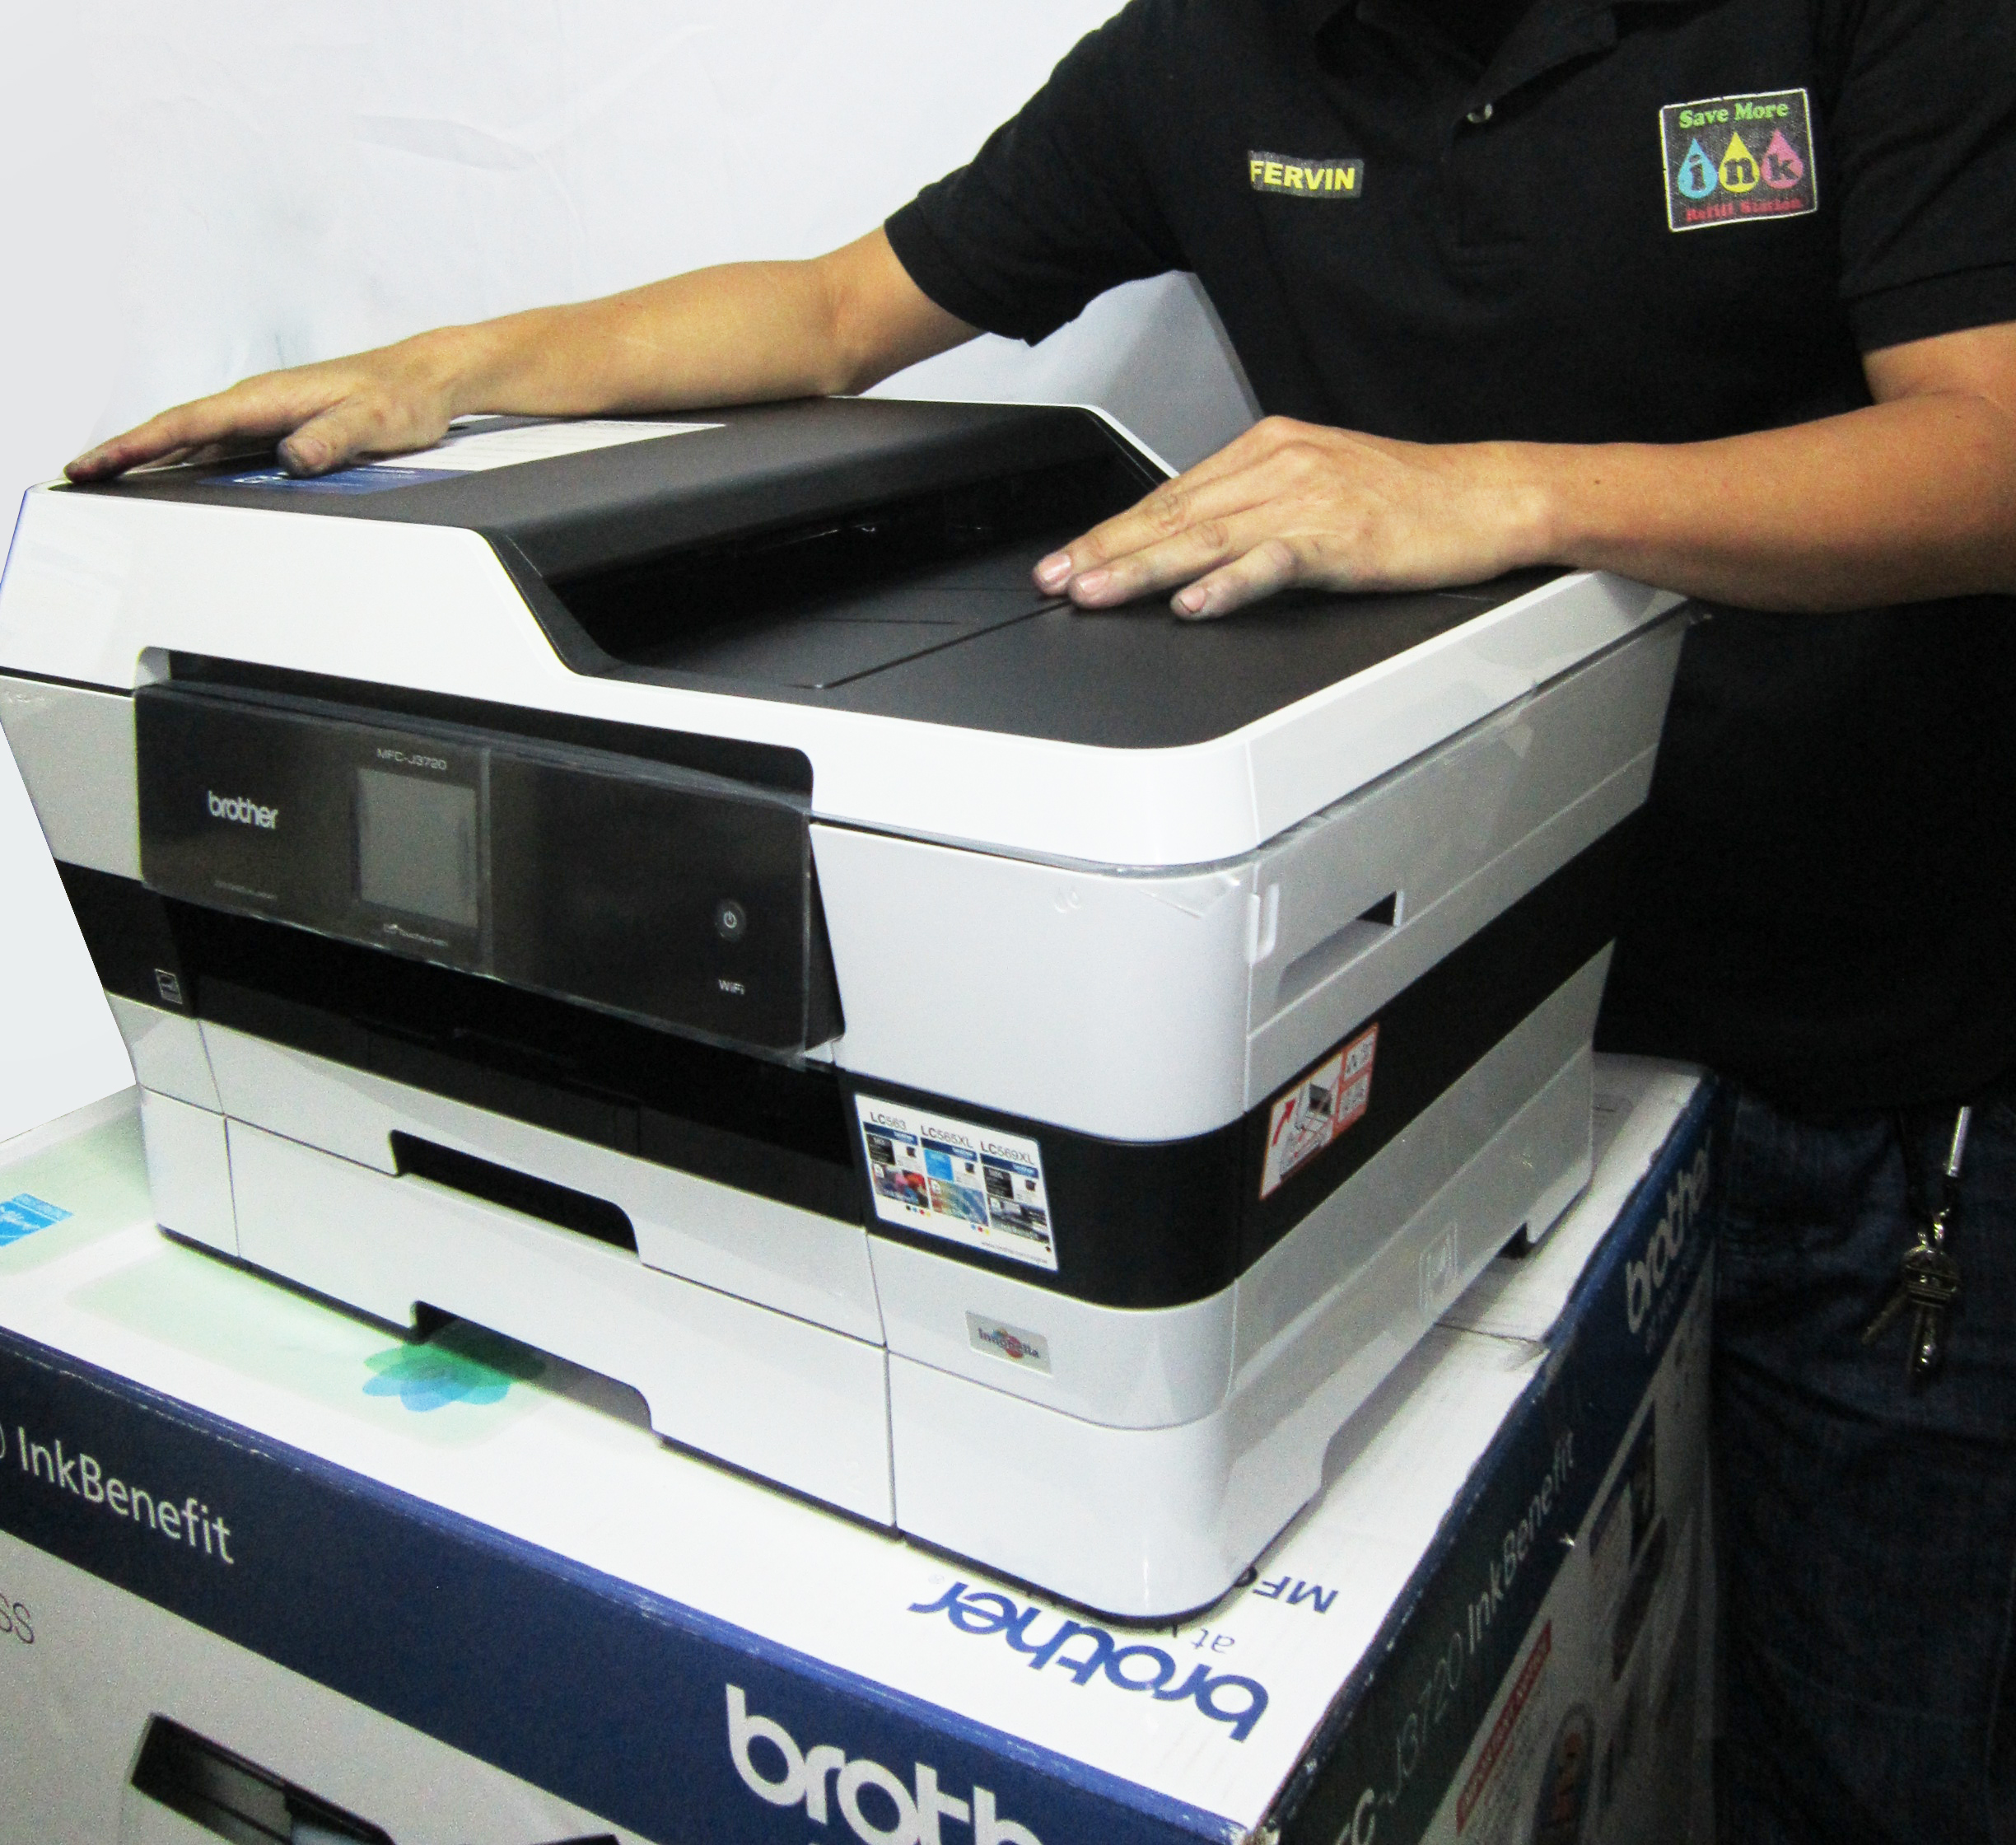 A3 Photo Printing Brother Mfc J3720 A3 Print Scan Copy Fax Wireless Brand New